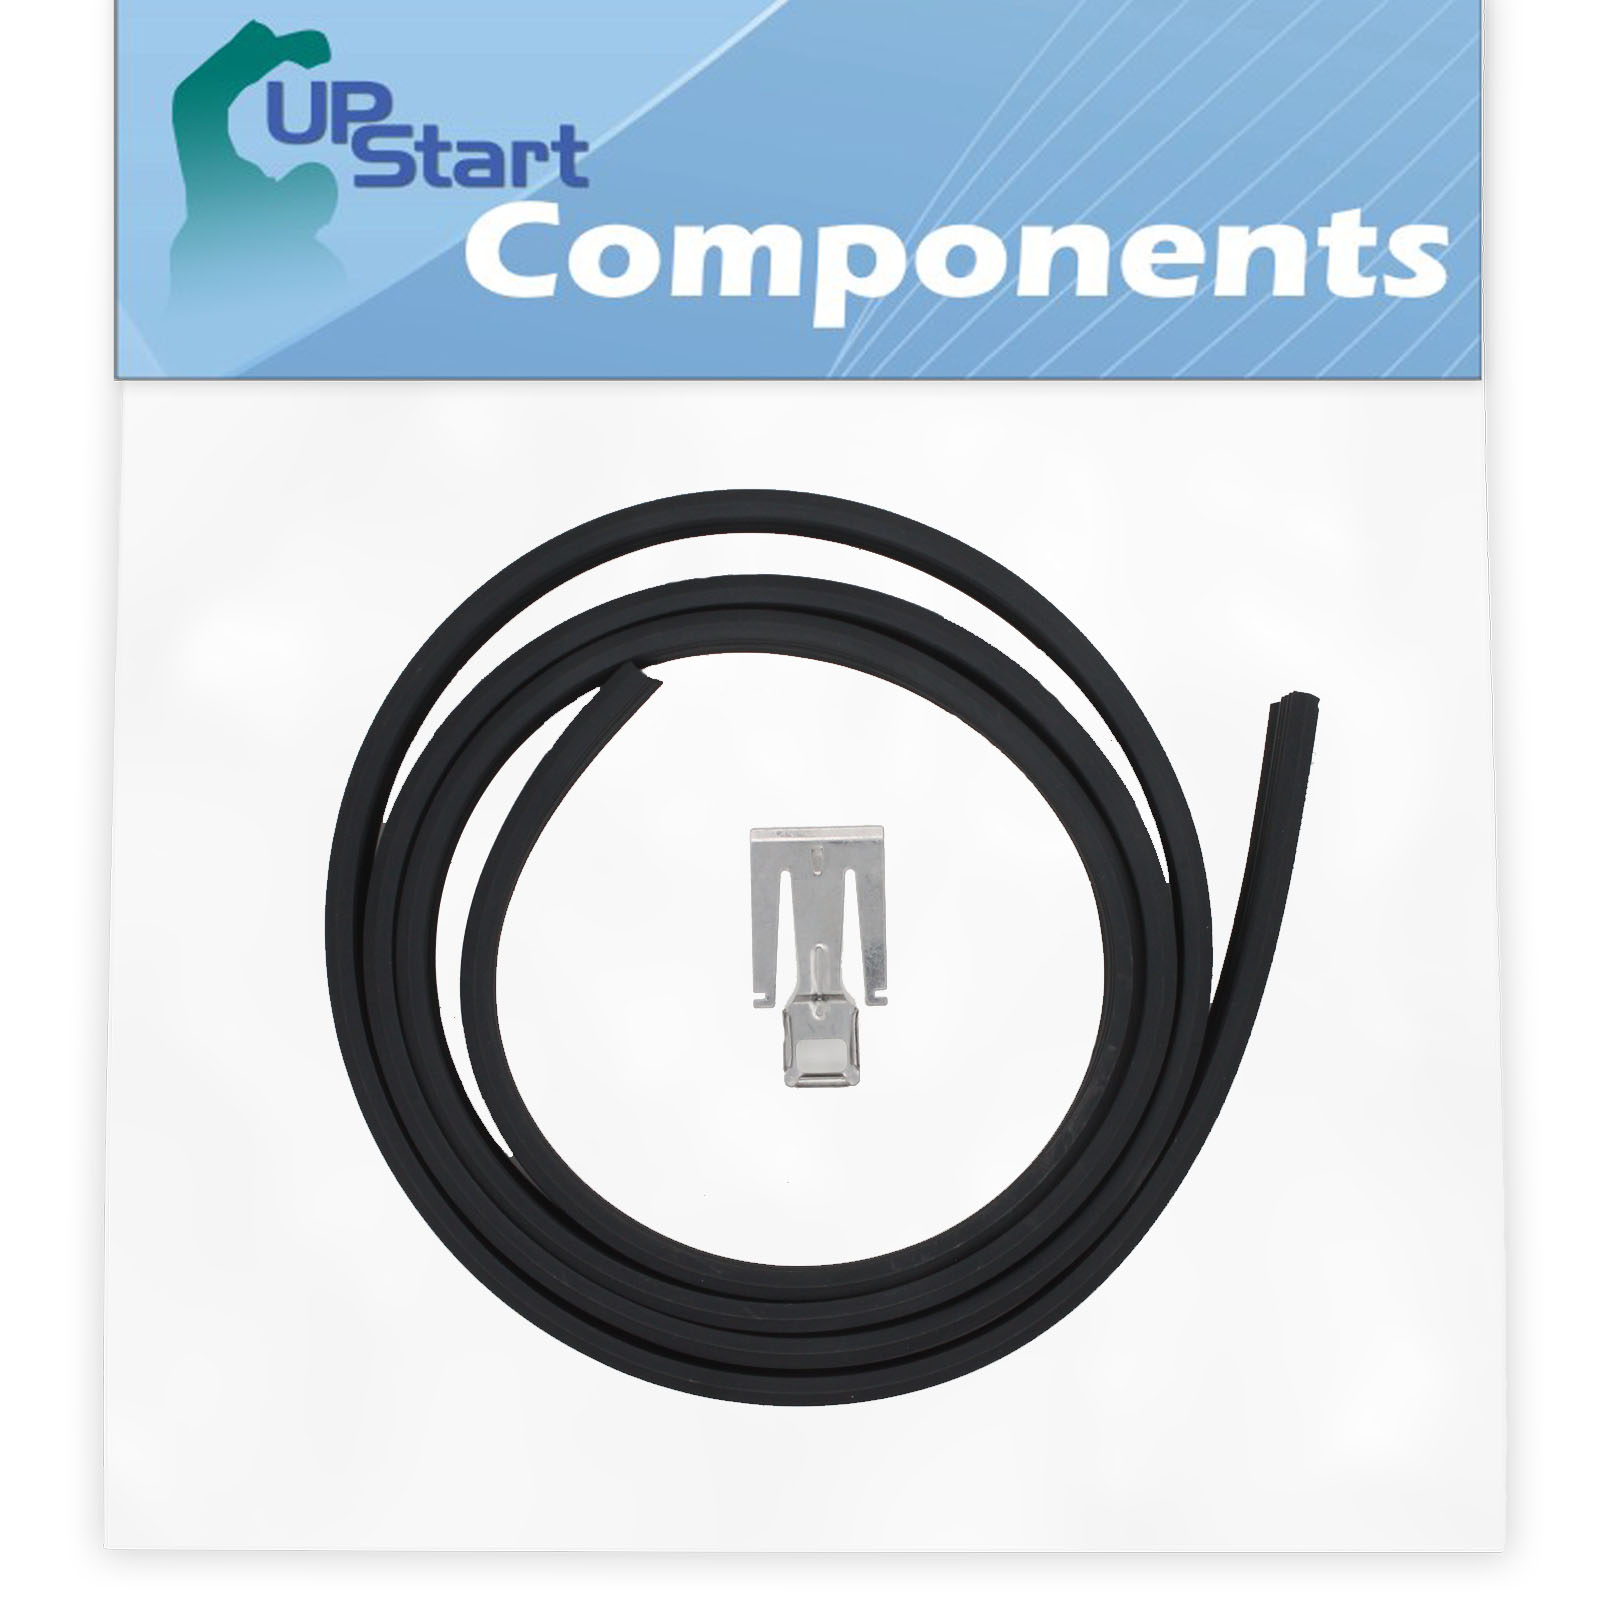 UpStart Components Brand Compatible with W10542314 Door Seal W10542314 Dishwasher Door Gasket Replacement for Whirlpool WDF530PLYB0 Dishwasher